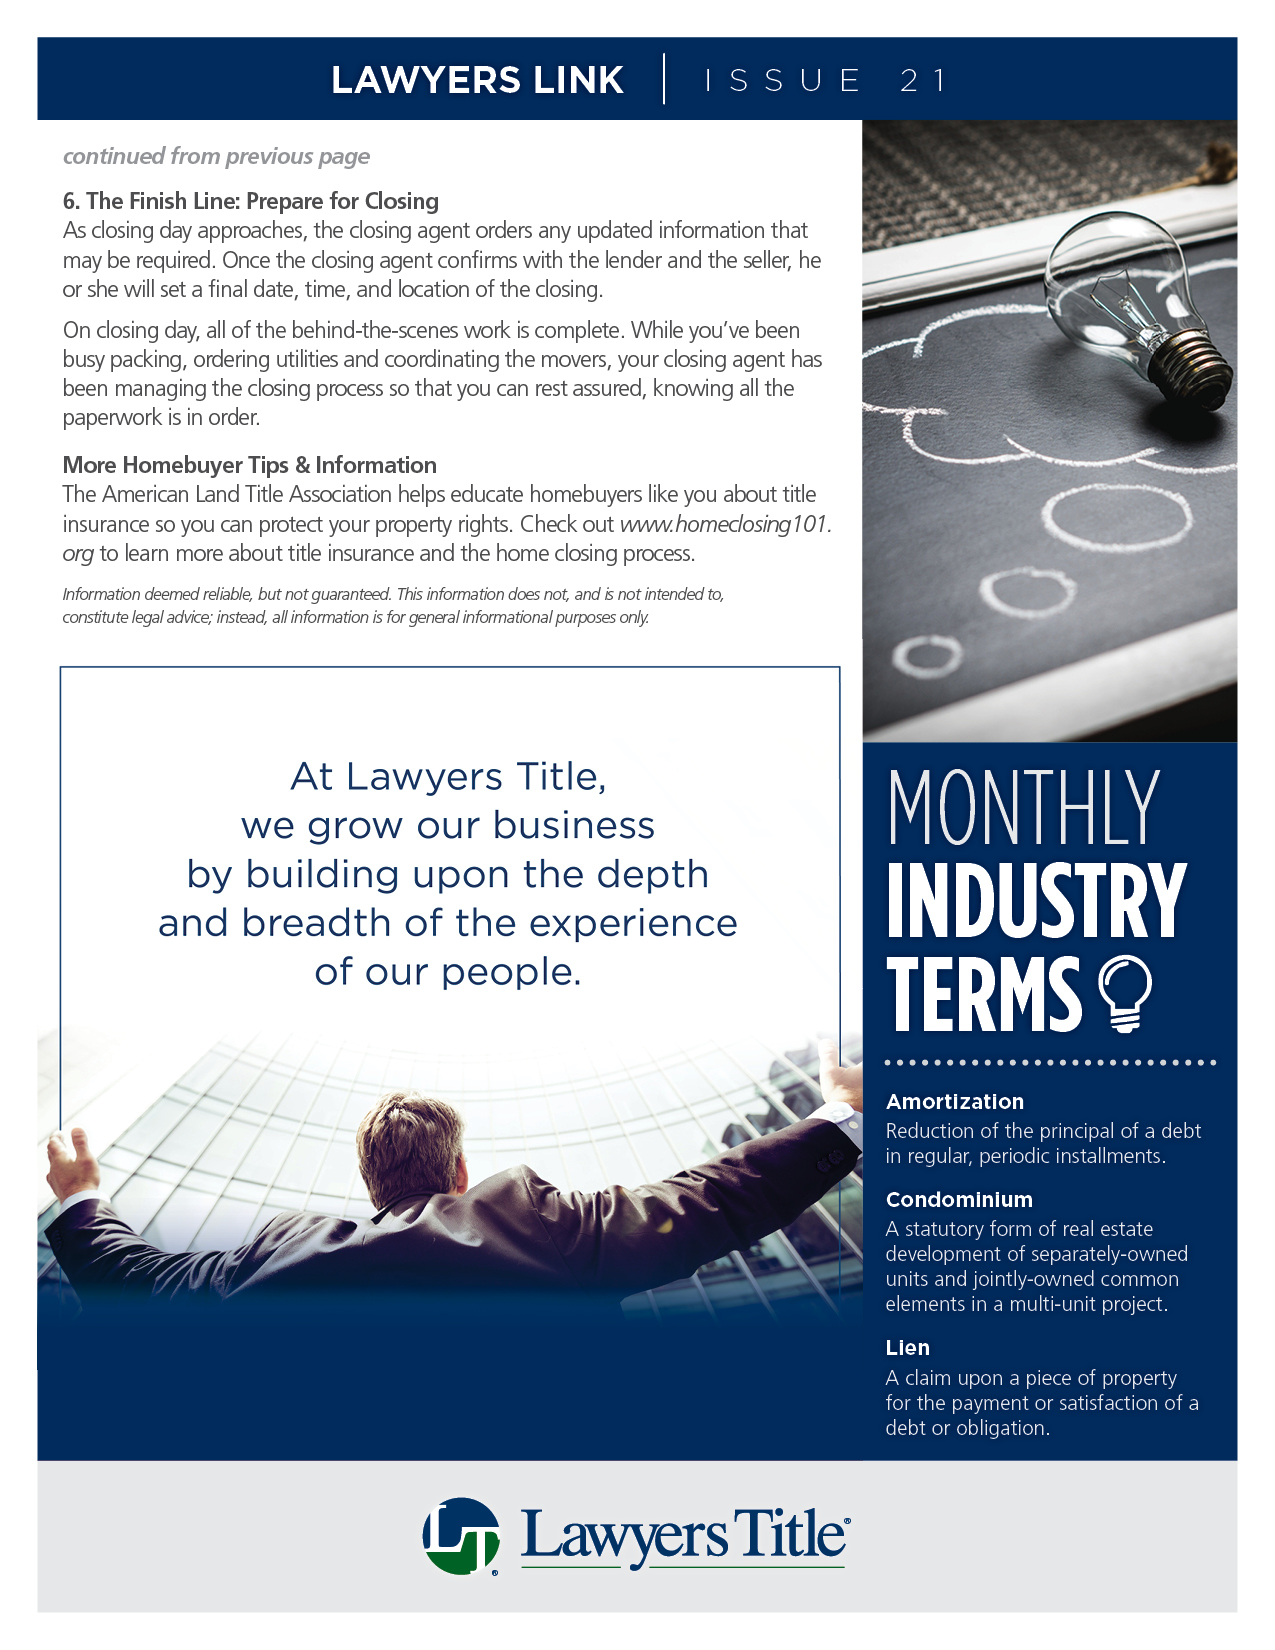 Lawyers Link Issue 21, page 3